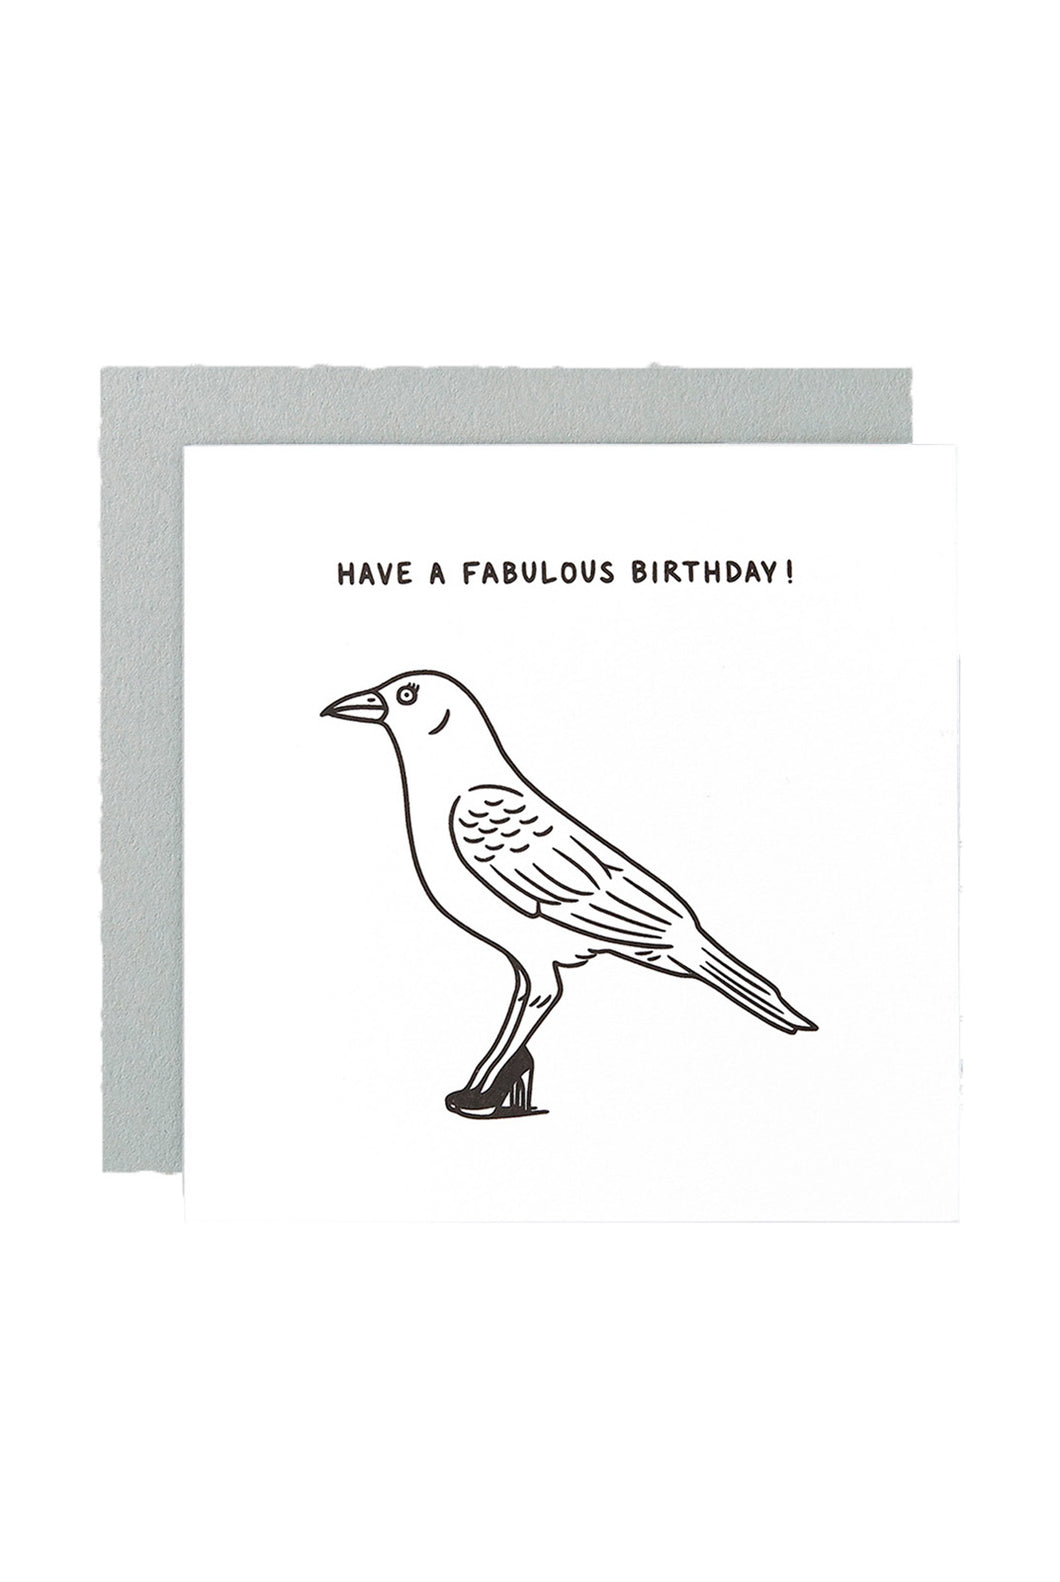 WRAP - Matte Blease Collection - Single Letterpress Card - Fabulous Birthday